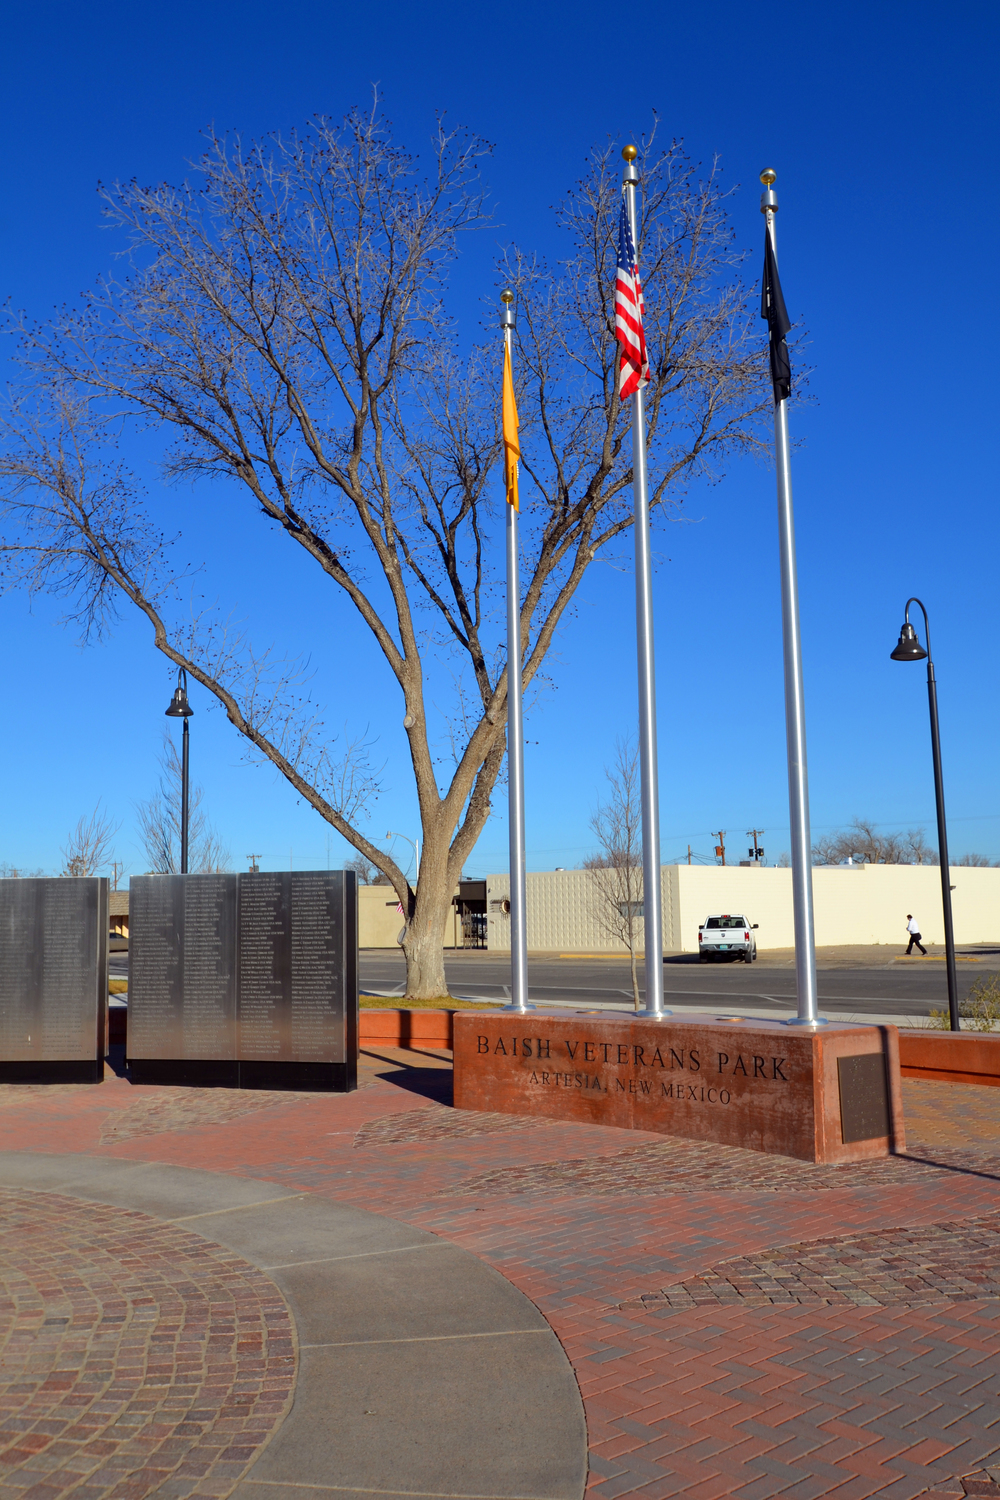 Memorial park with flag poles